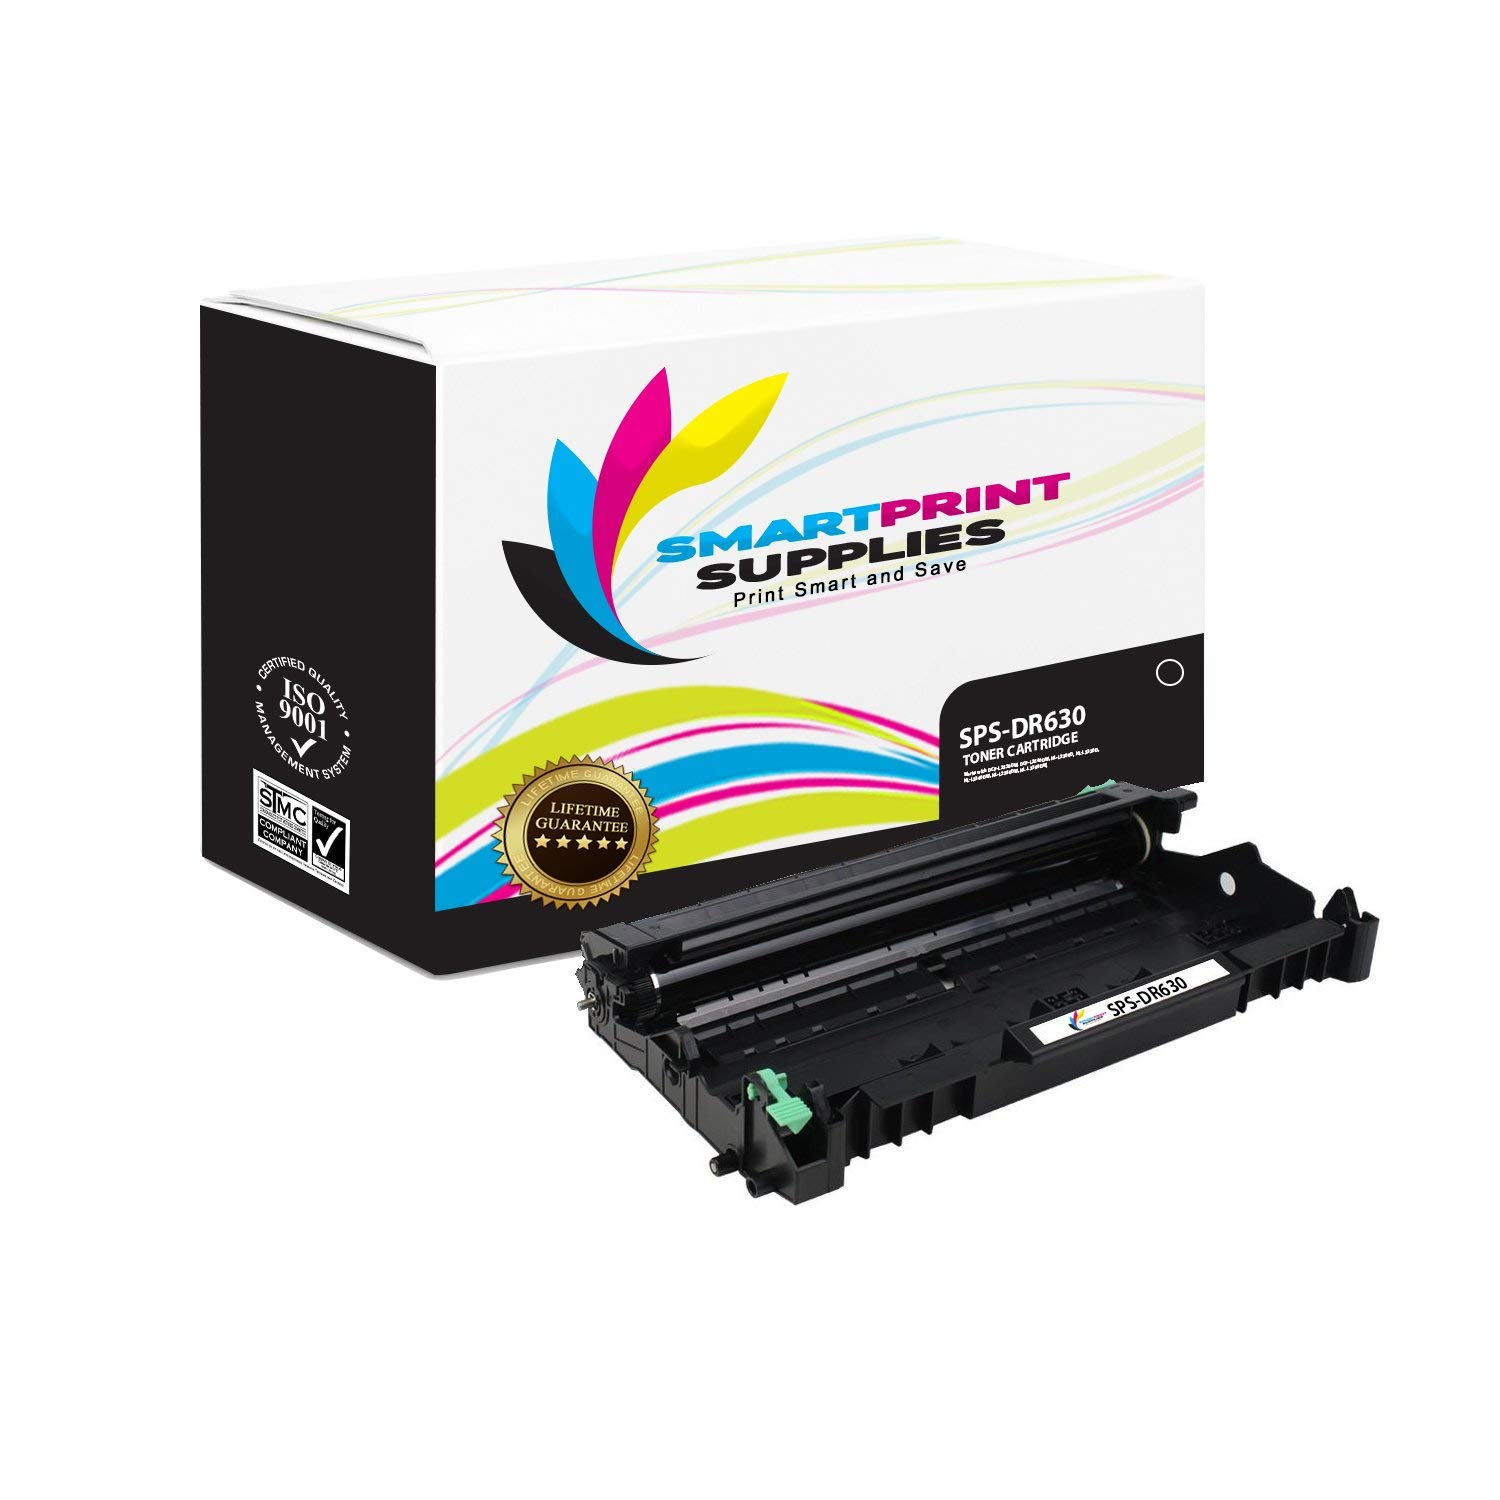 Smart Print Supplies DR630 Compatible Drum Unit Replacement for Brother DR-630, DCP-L2520 L2540, HL-L2300 L2305 L2320 L2340 L2360 L2380, MFC-L2700 L2720 L2740 Printers (12,000 Pages)